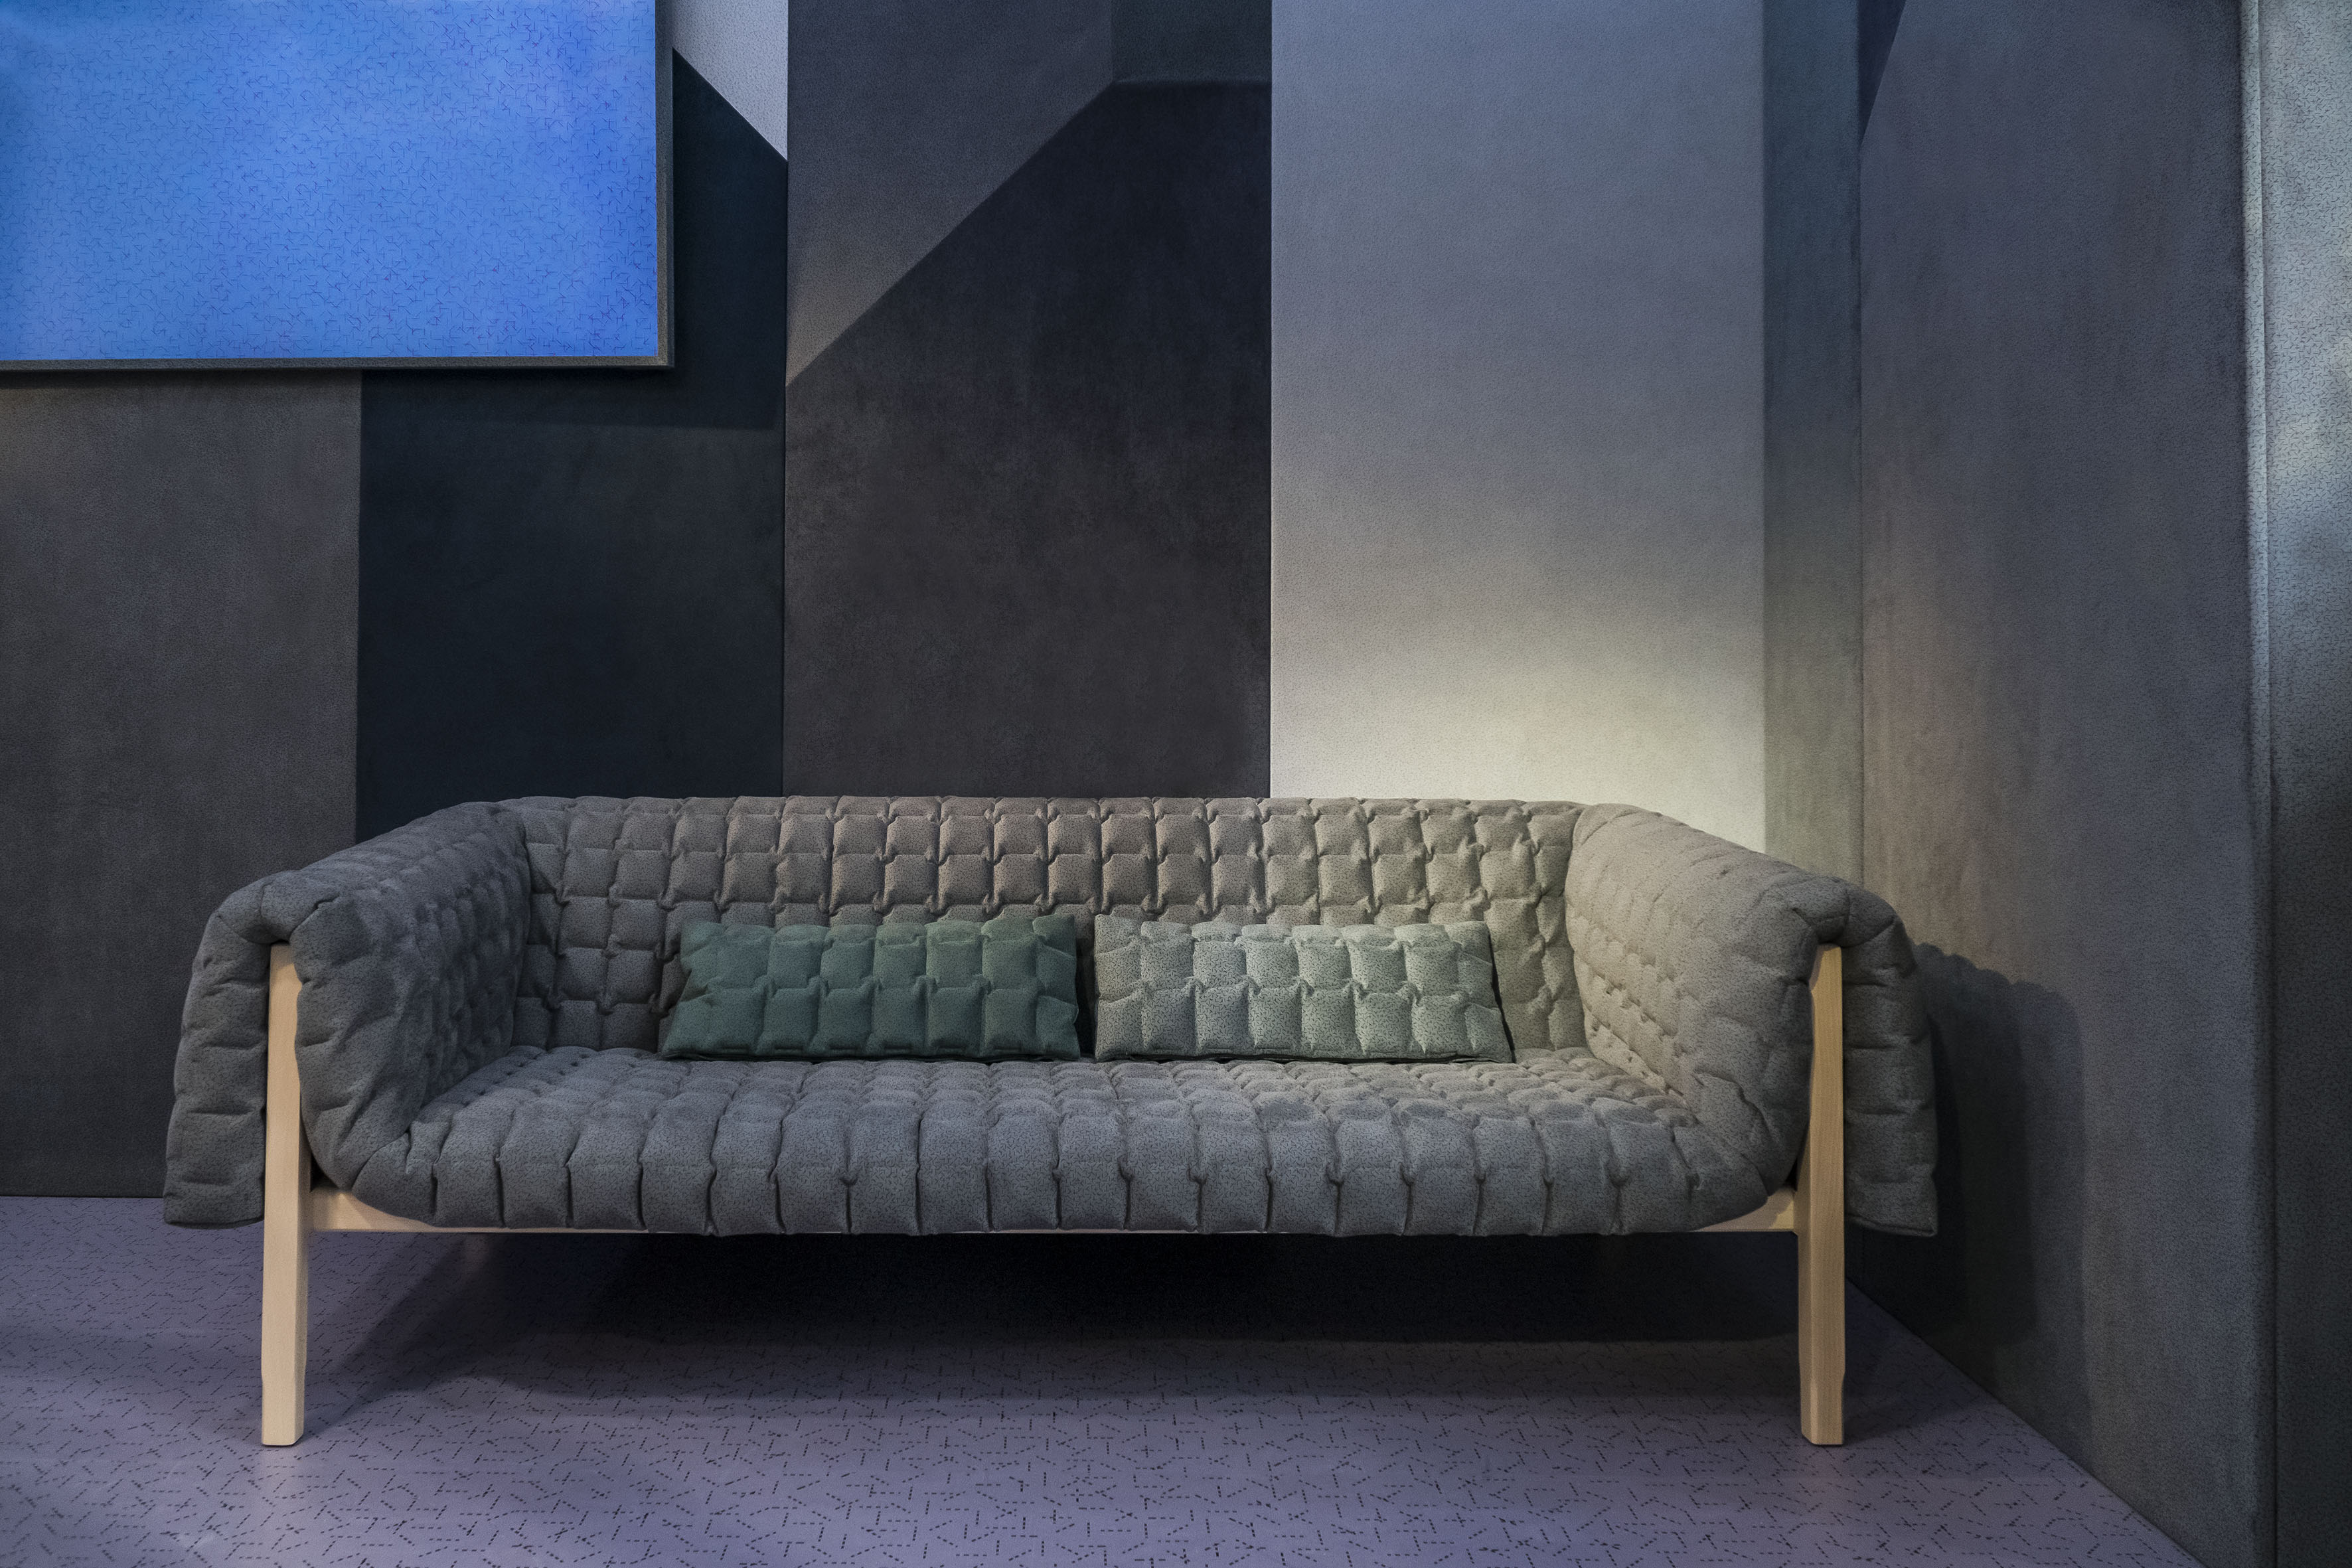 alcantara sofa good alcantara sofa with alcantara sofa luzern with alcantara sofa good canape. Black Bedroom Furniture Sets. Home Design Ideas